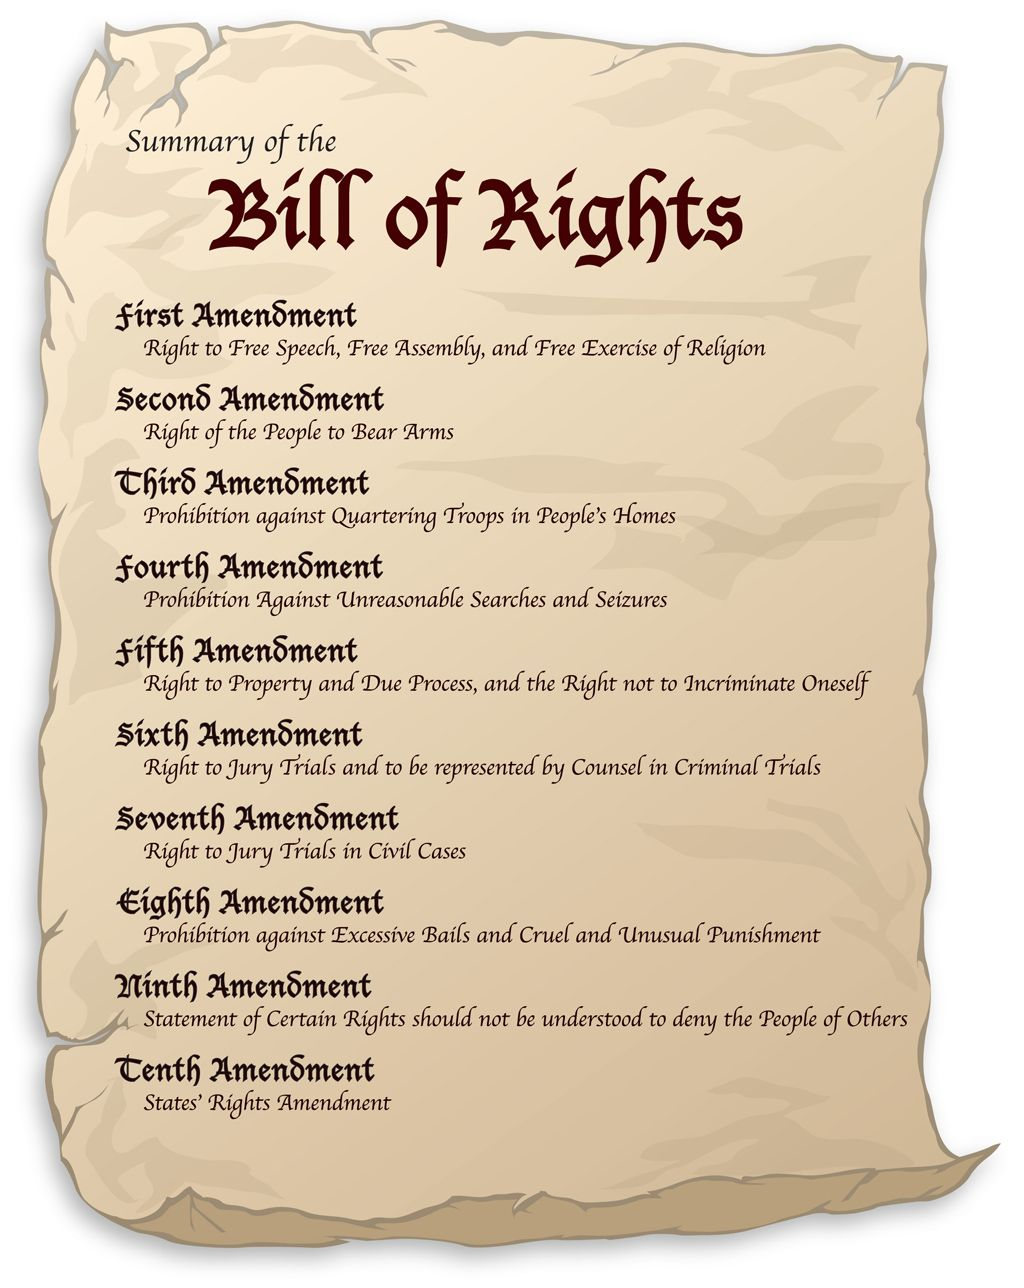 figure replicates the bill of rights scroll and lists the first ten